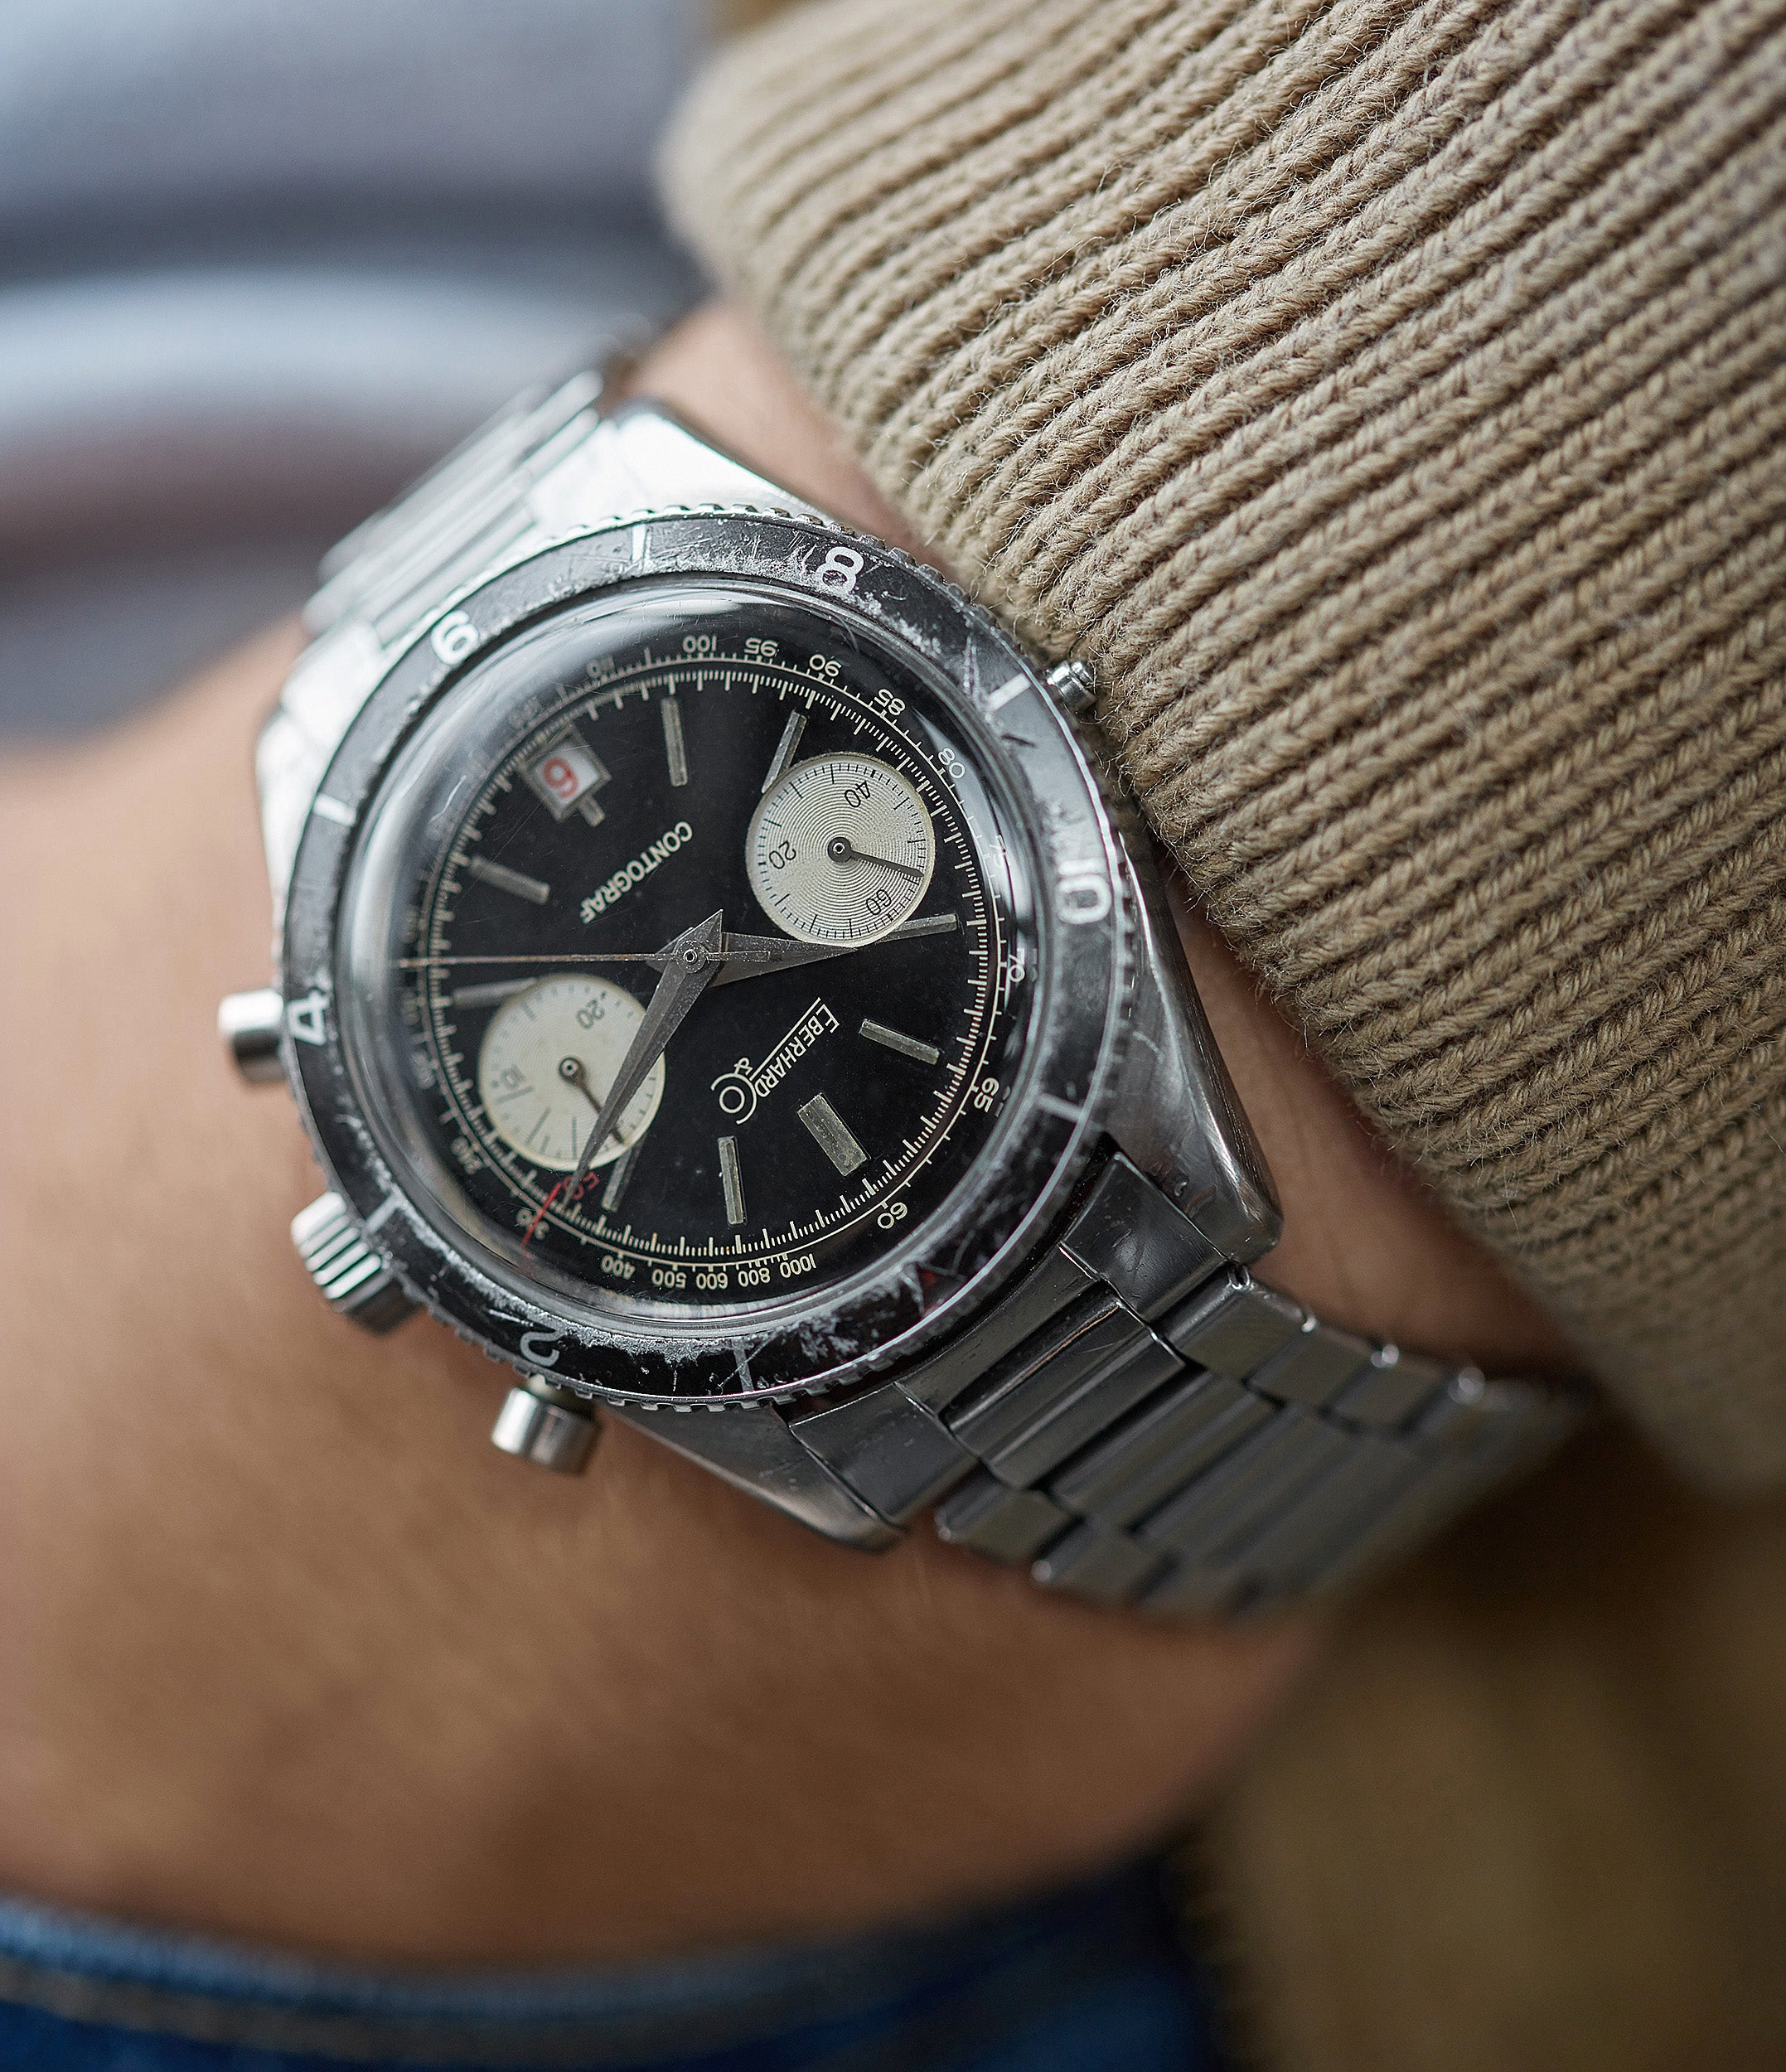 hands-on with vintage Eberhard Contograf chronograph steel sports watch for sale online at A Collected Man London UK specialist of rare watches